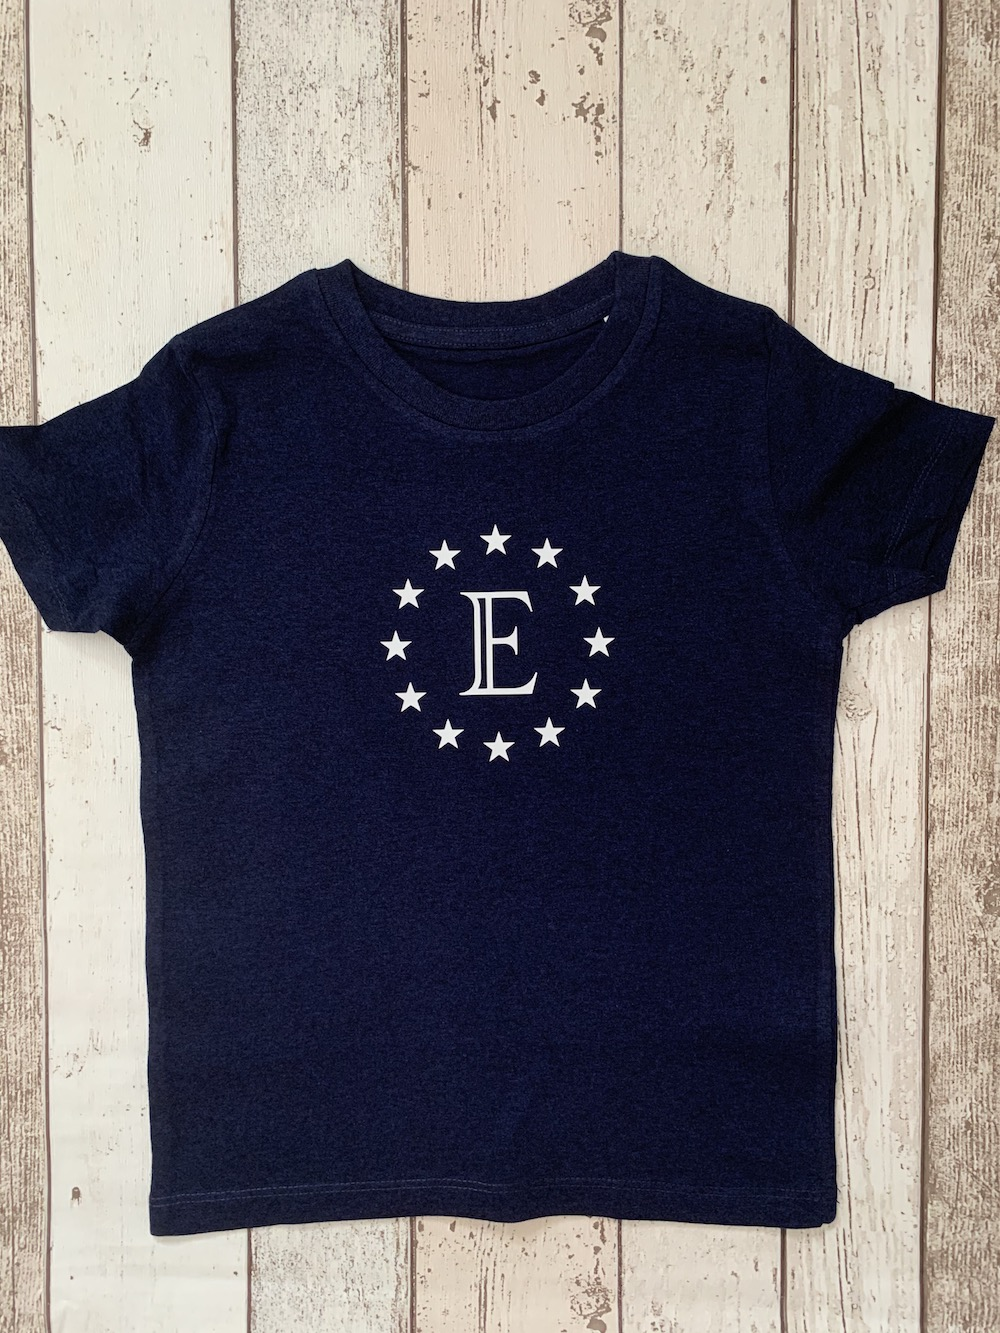 Stars Personalised Tshirt – Navy And White